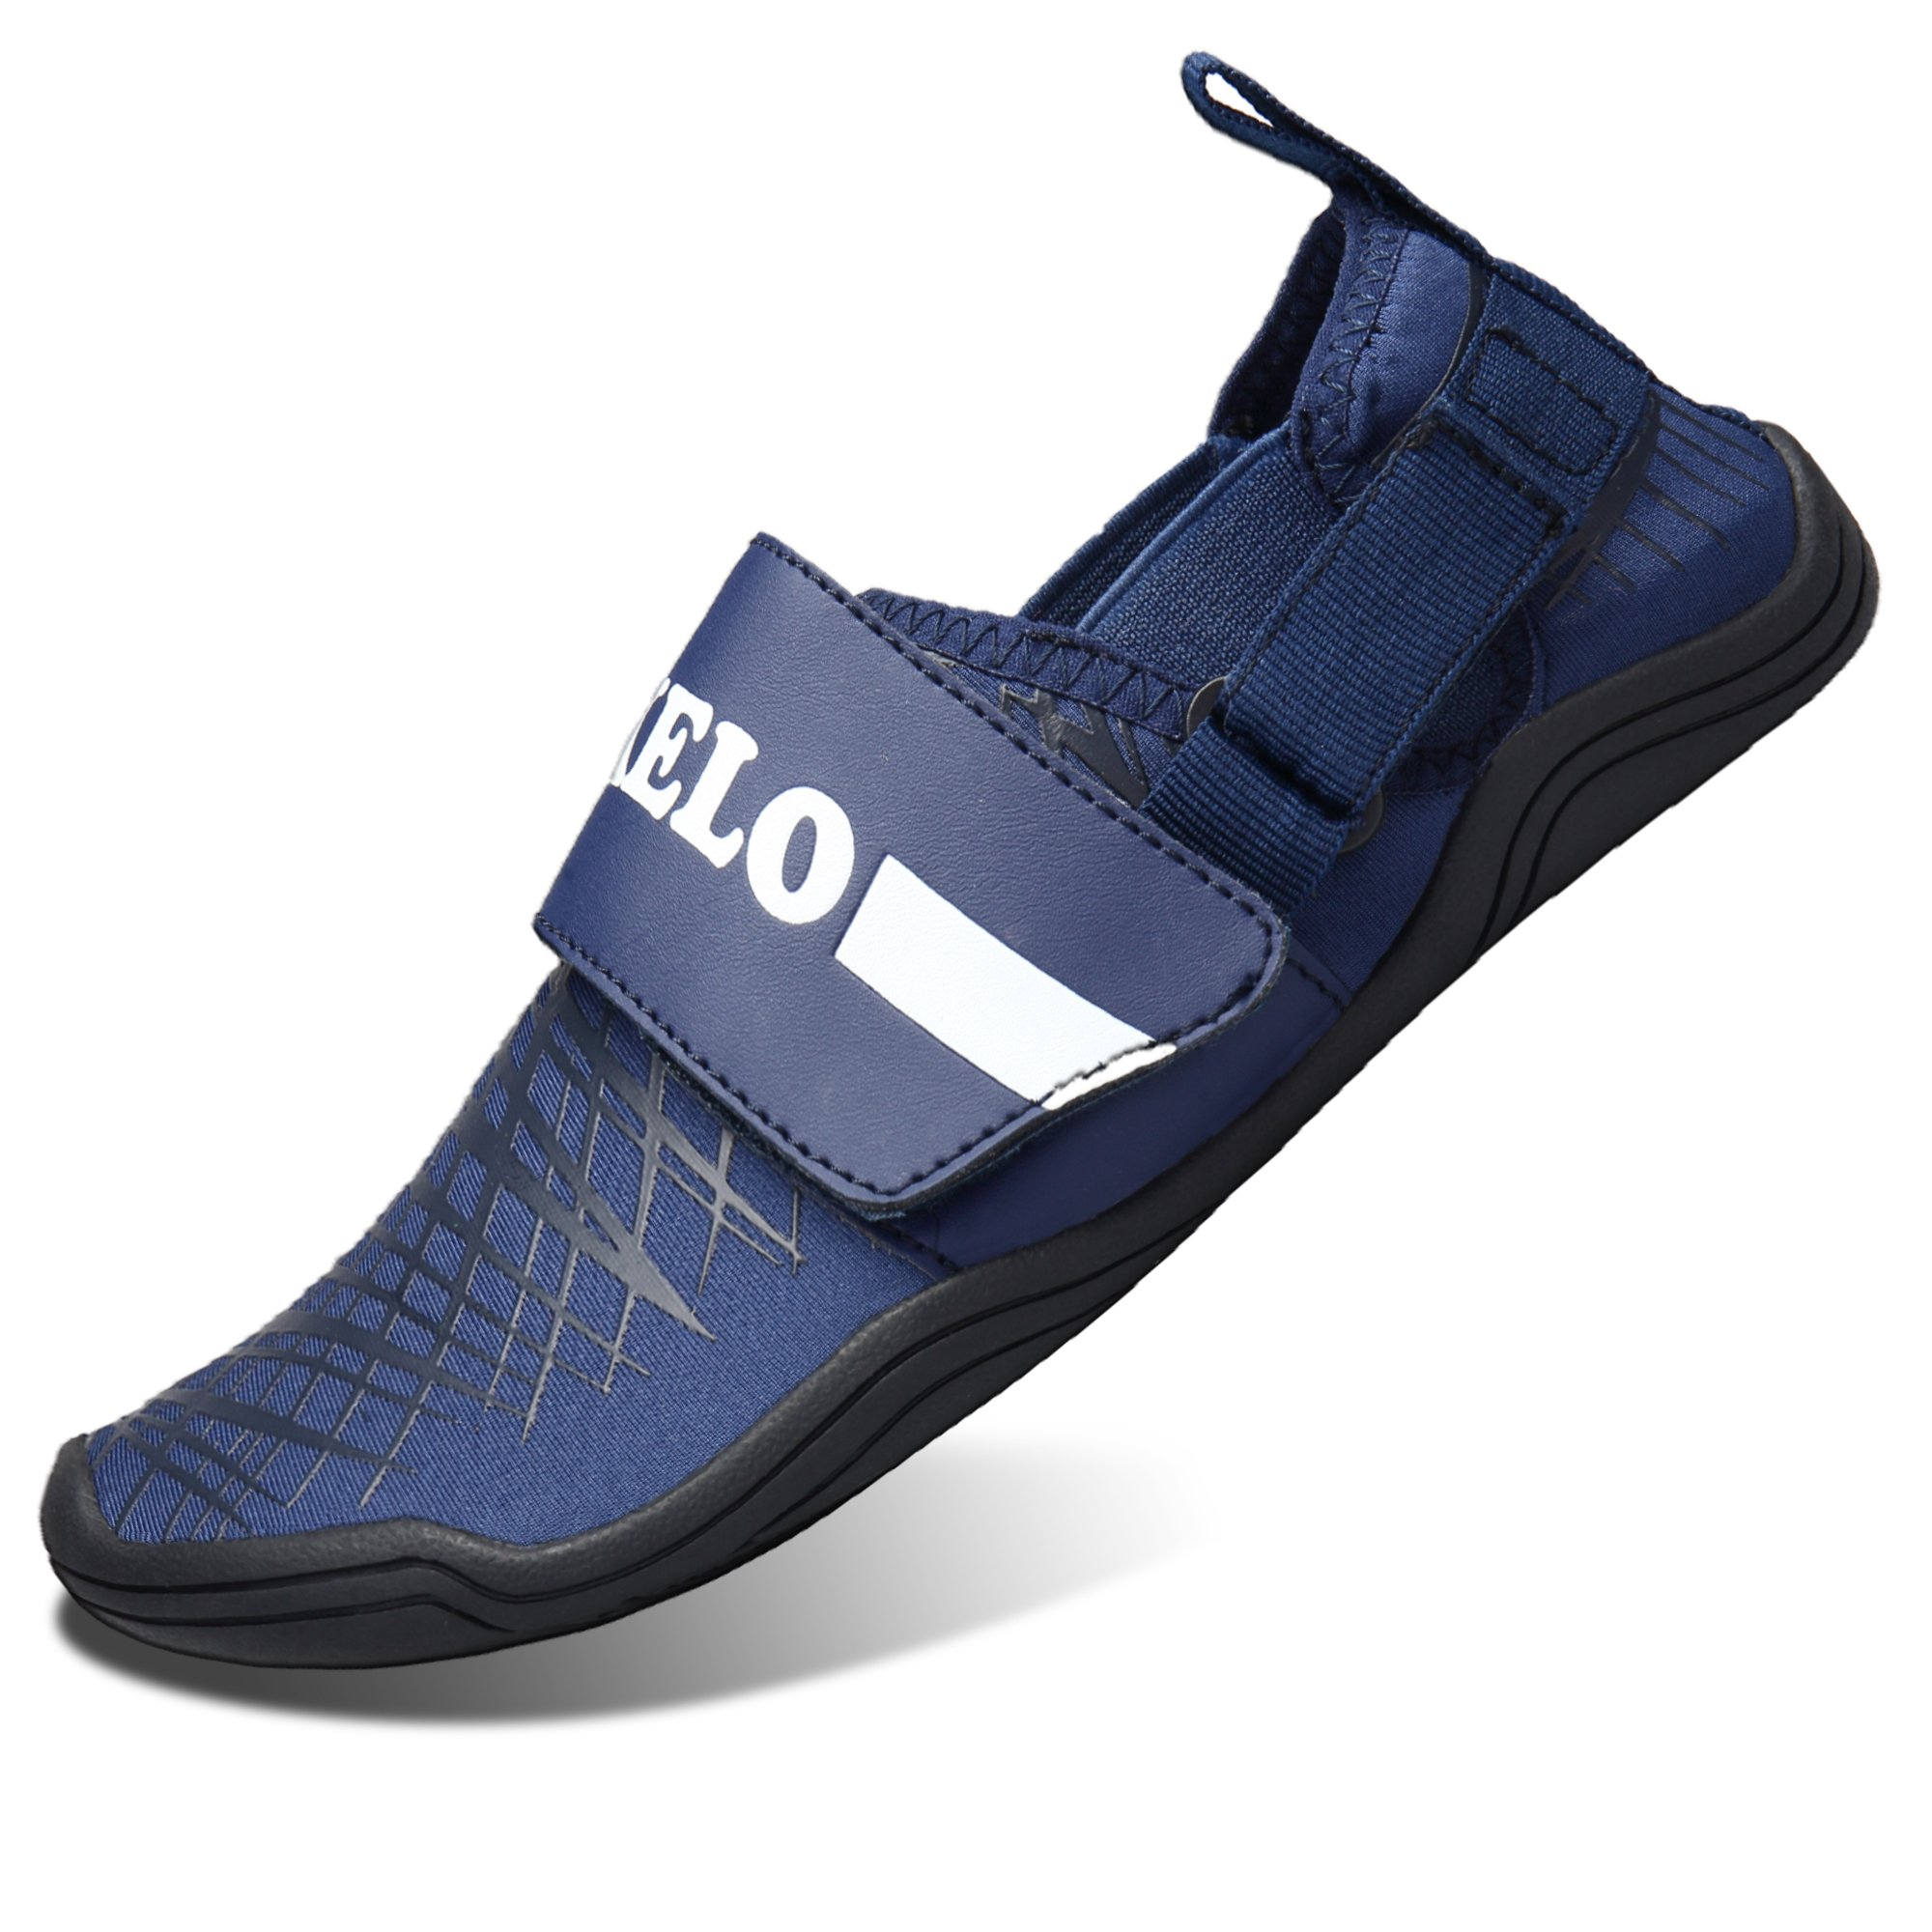 SIKELO Men and Women's Water Shoes Quick-Dry Barefoot Sports Lightweight